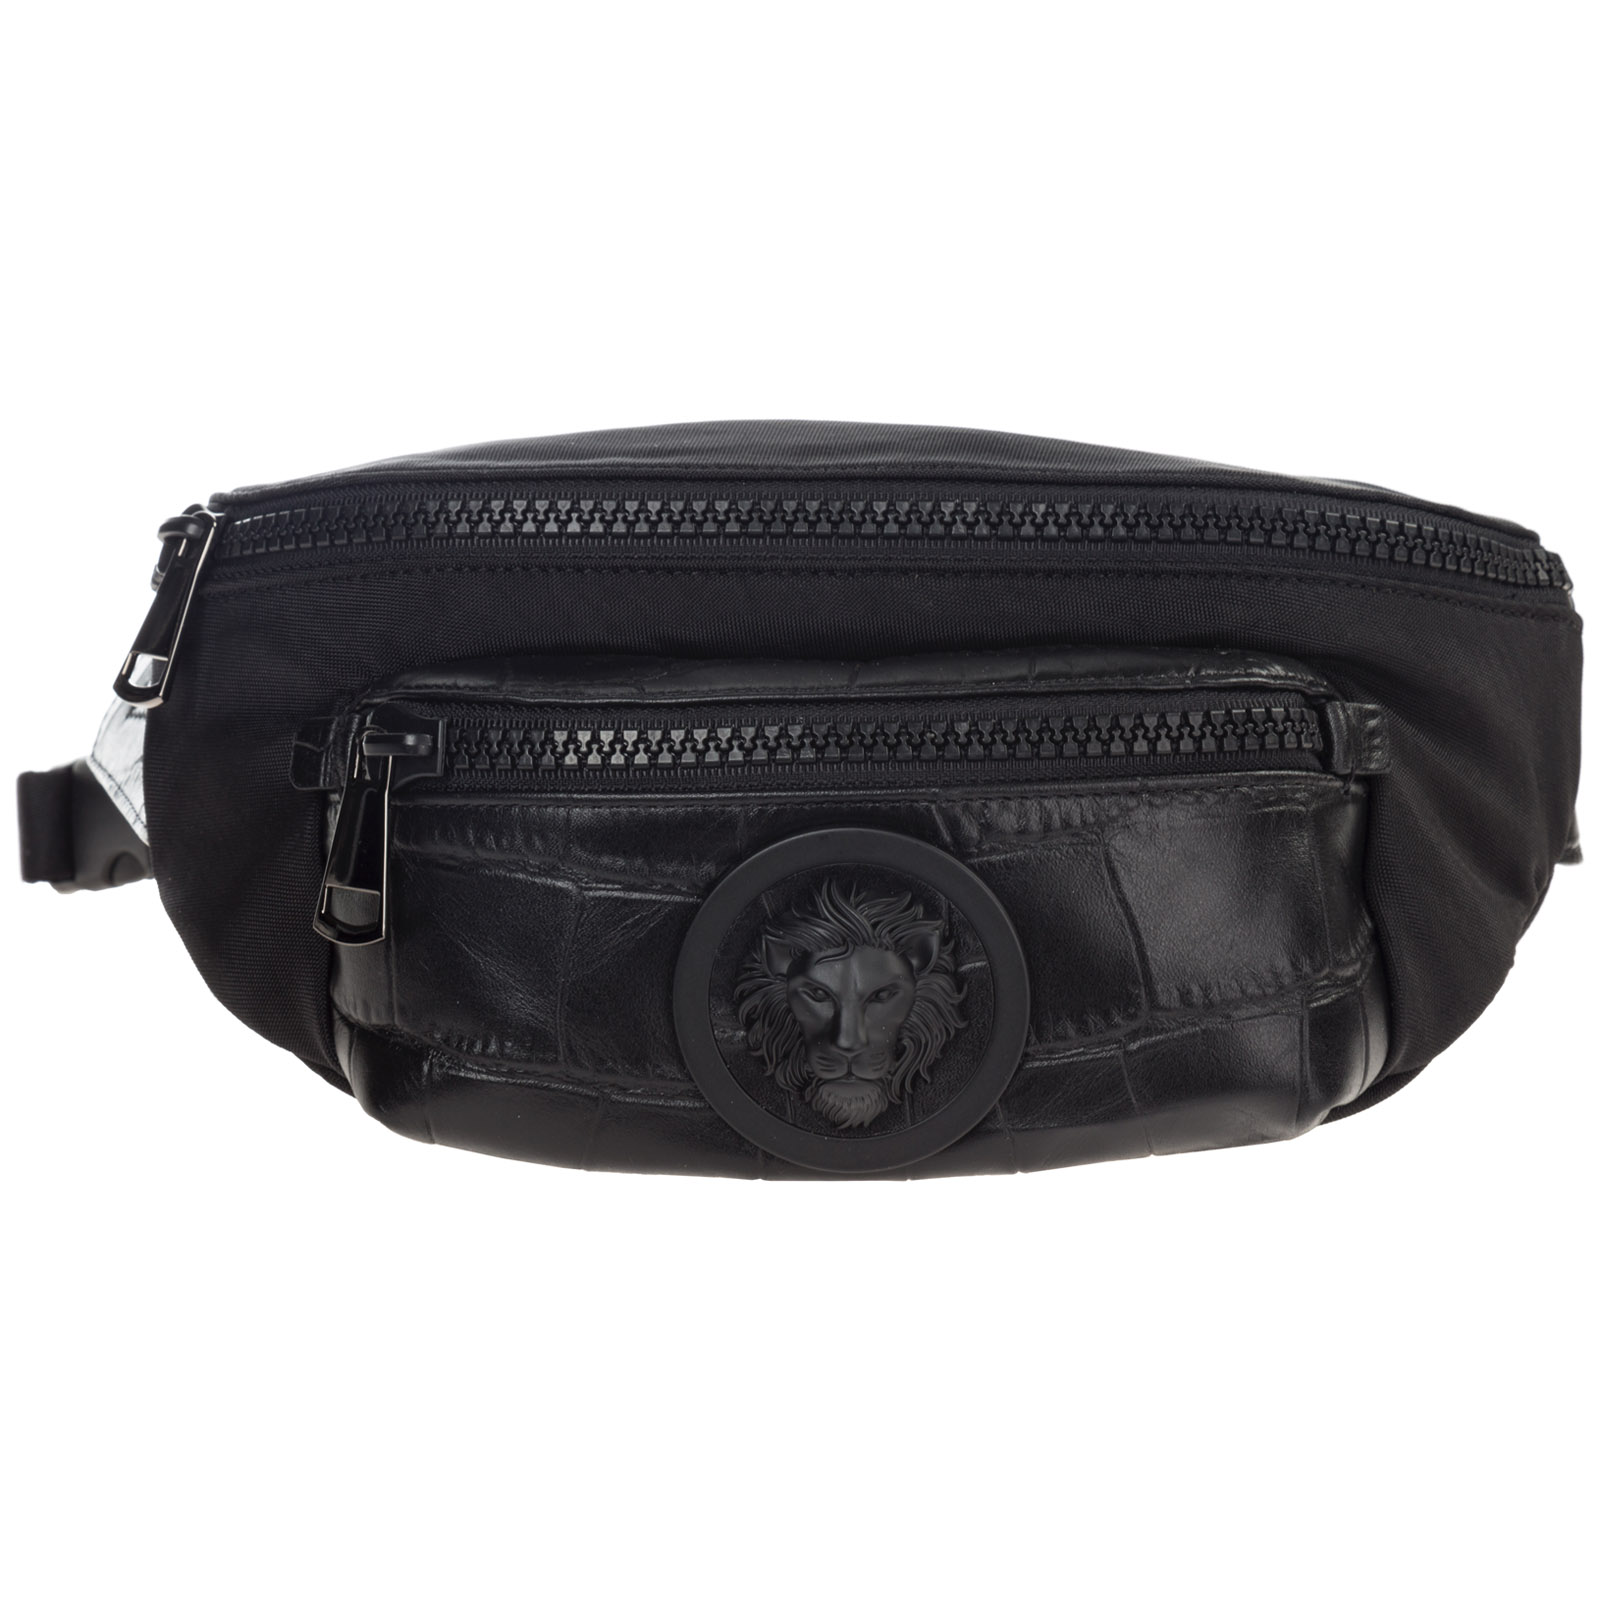 Men's belt bum bag hip pouch  lion head